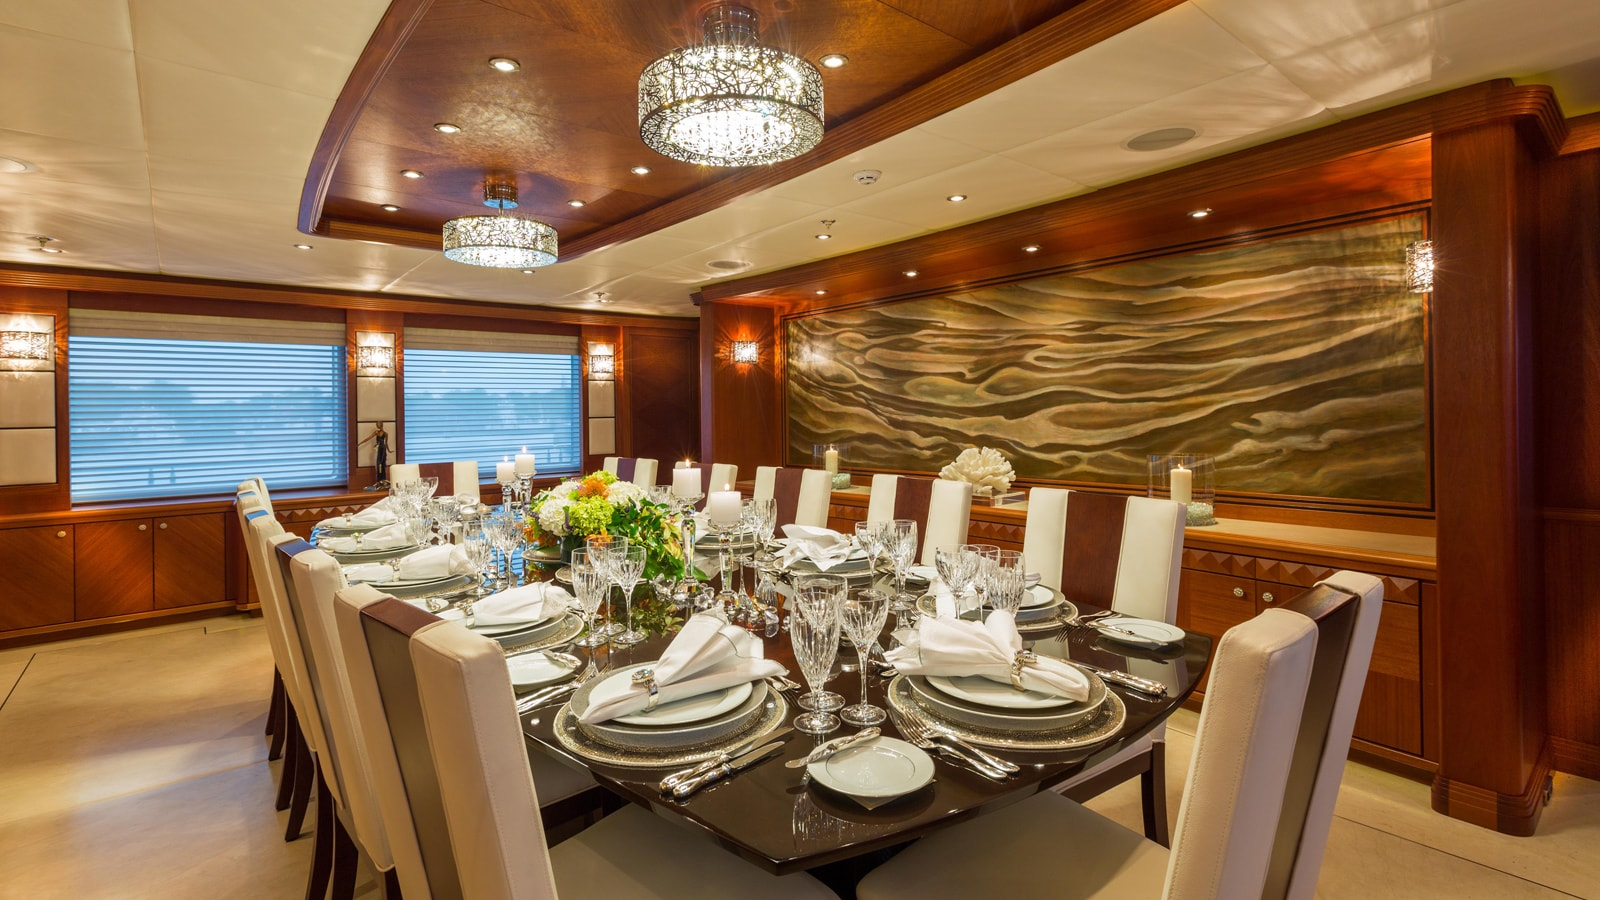 Dining Table Image Gallery  Luxury Yacht Browser  by CHARTERWORLD Superyacht Charter